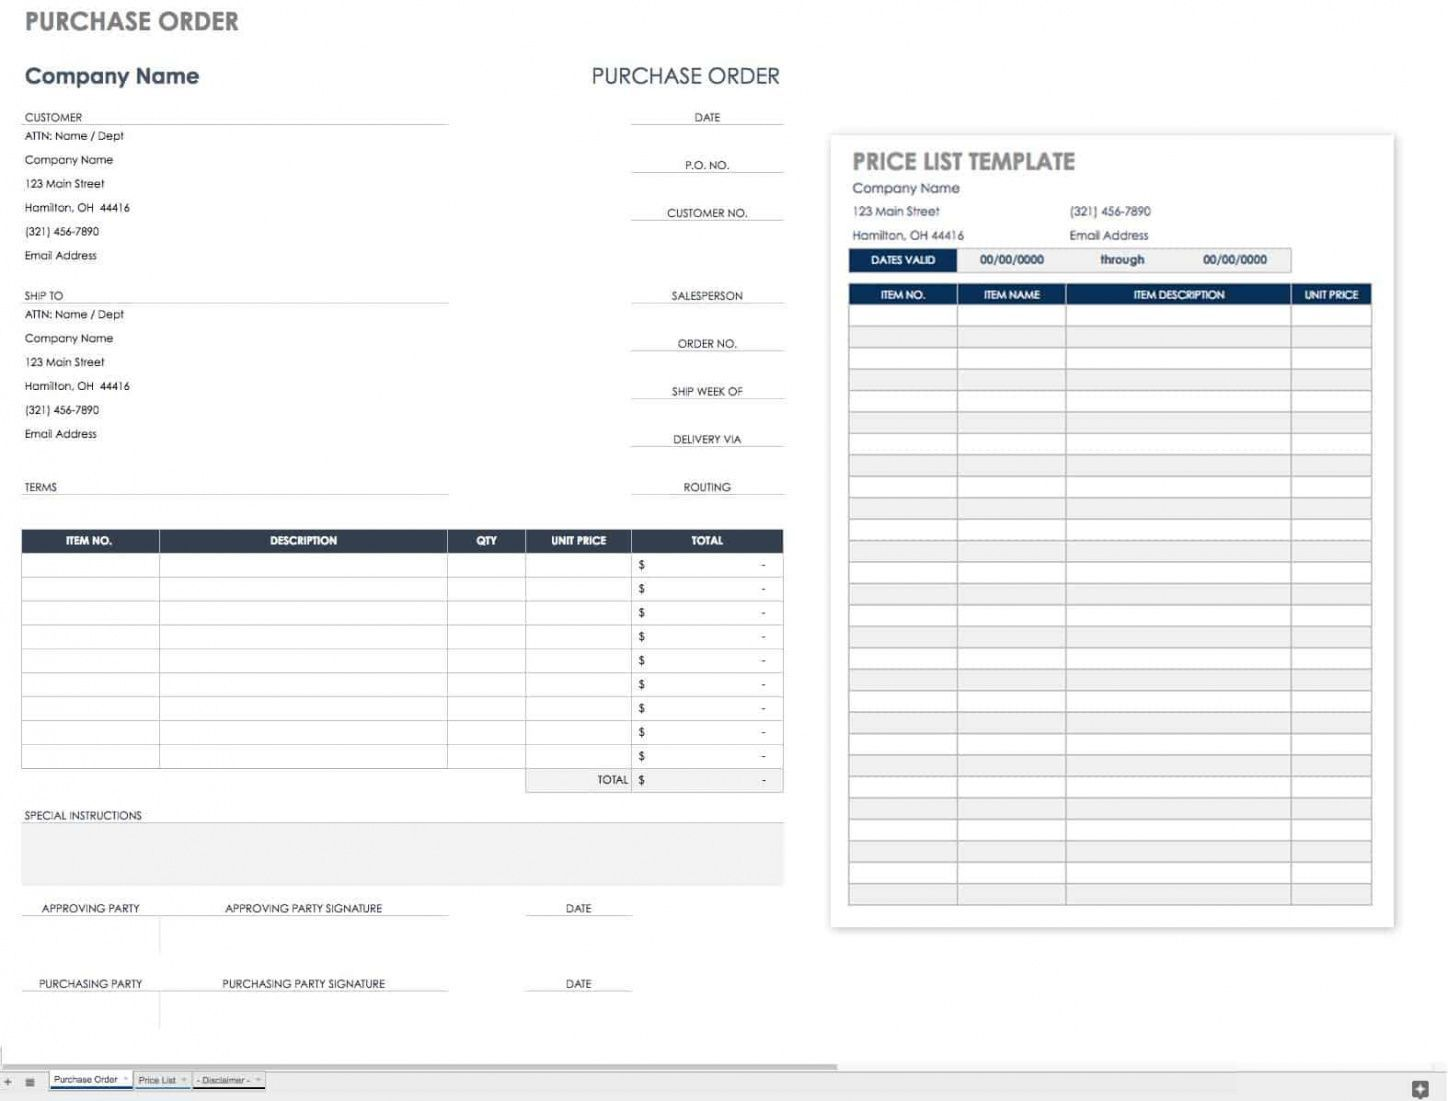 Browse Our Image Of International Purchase Order Template For Free Purchase Order Template Invoice Template Invoice Template Word